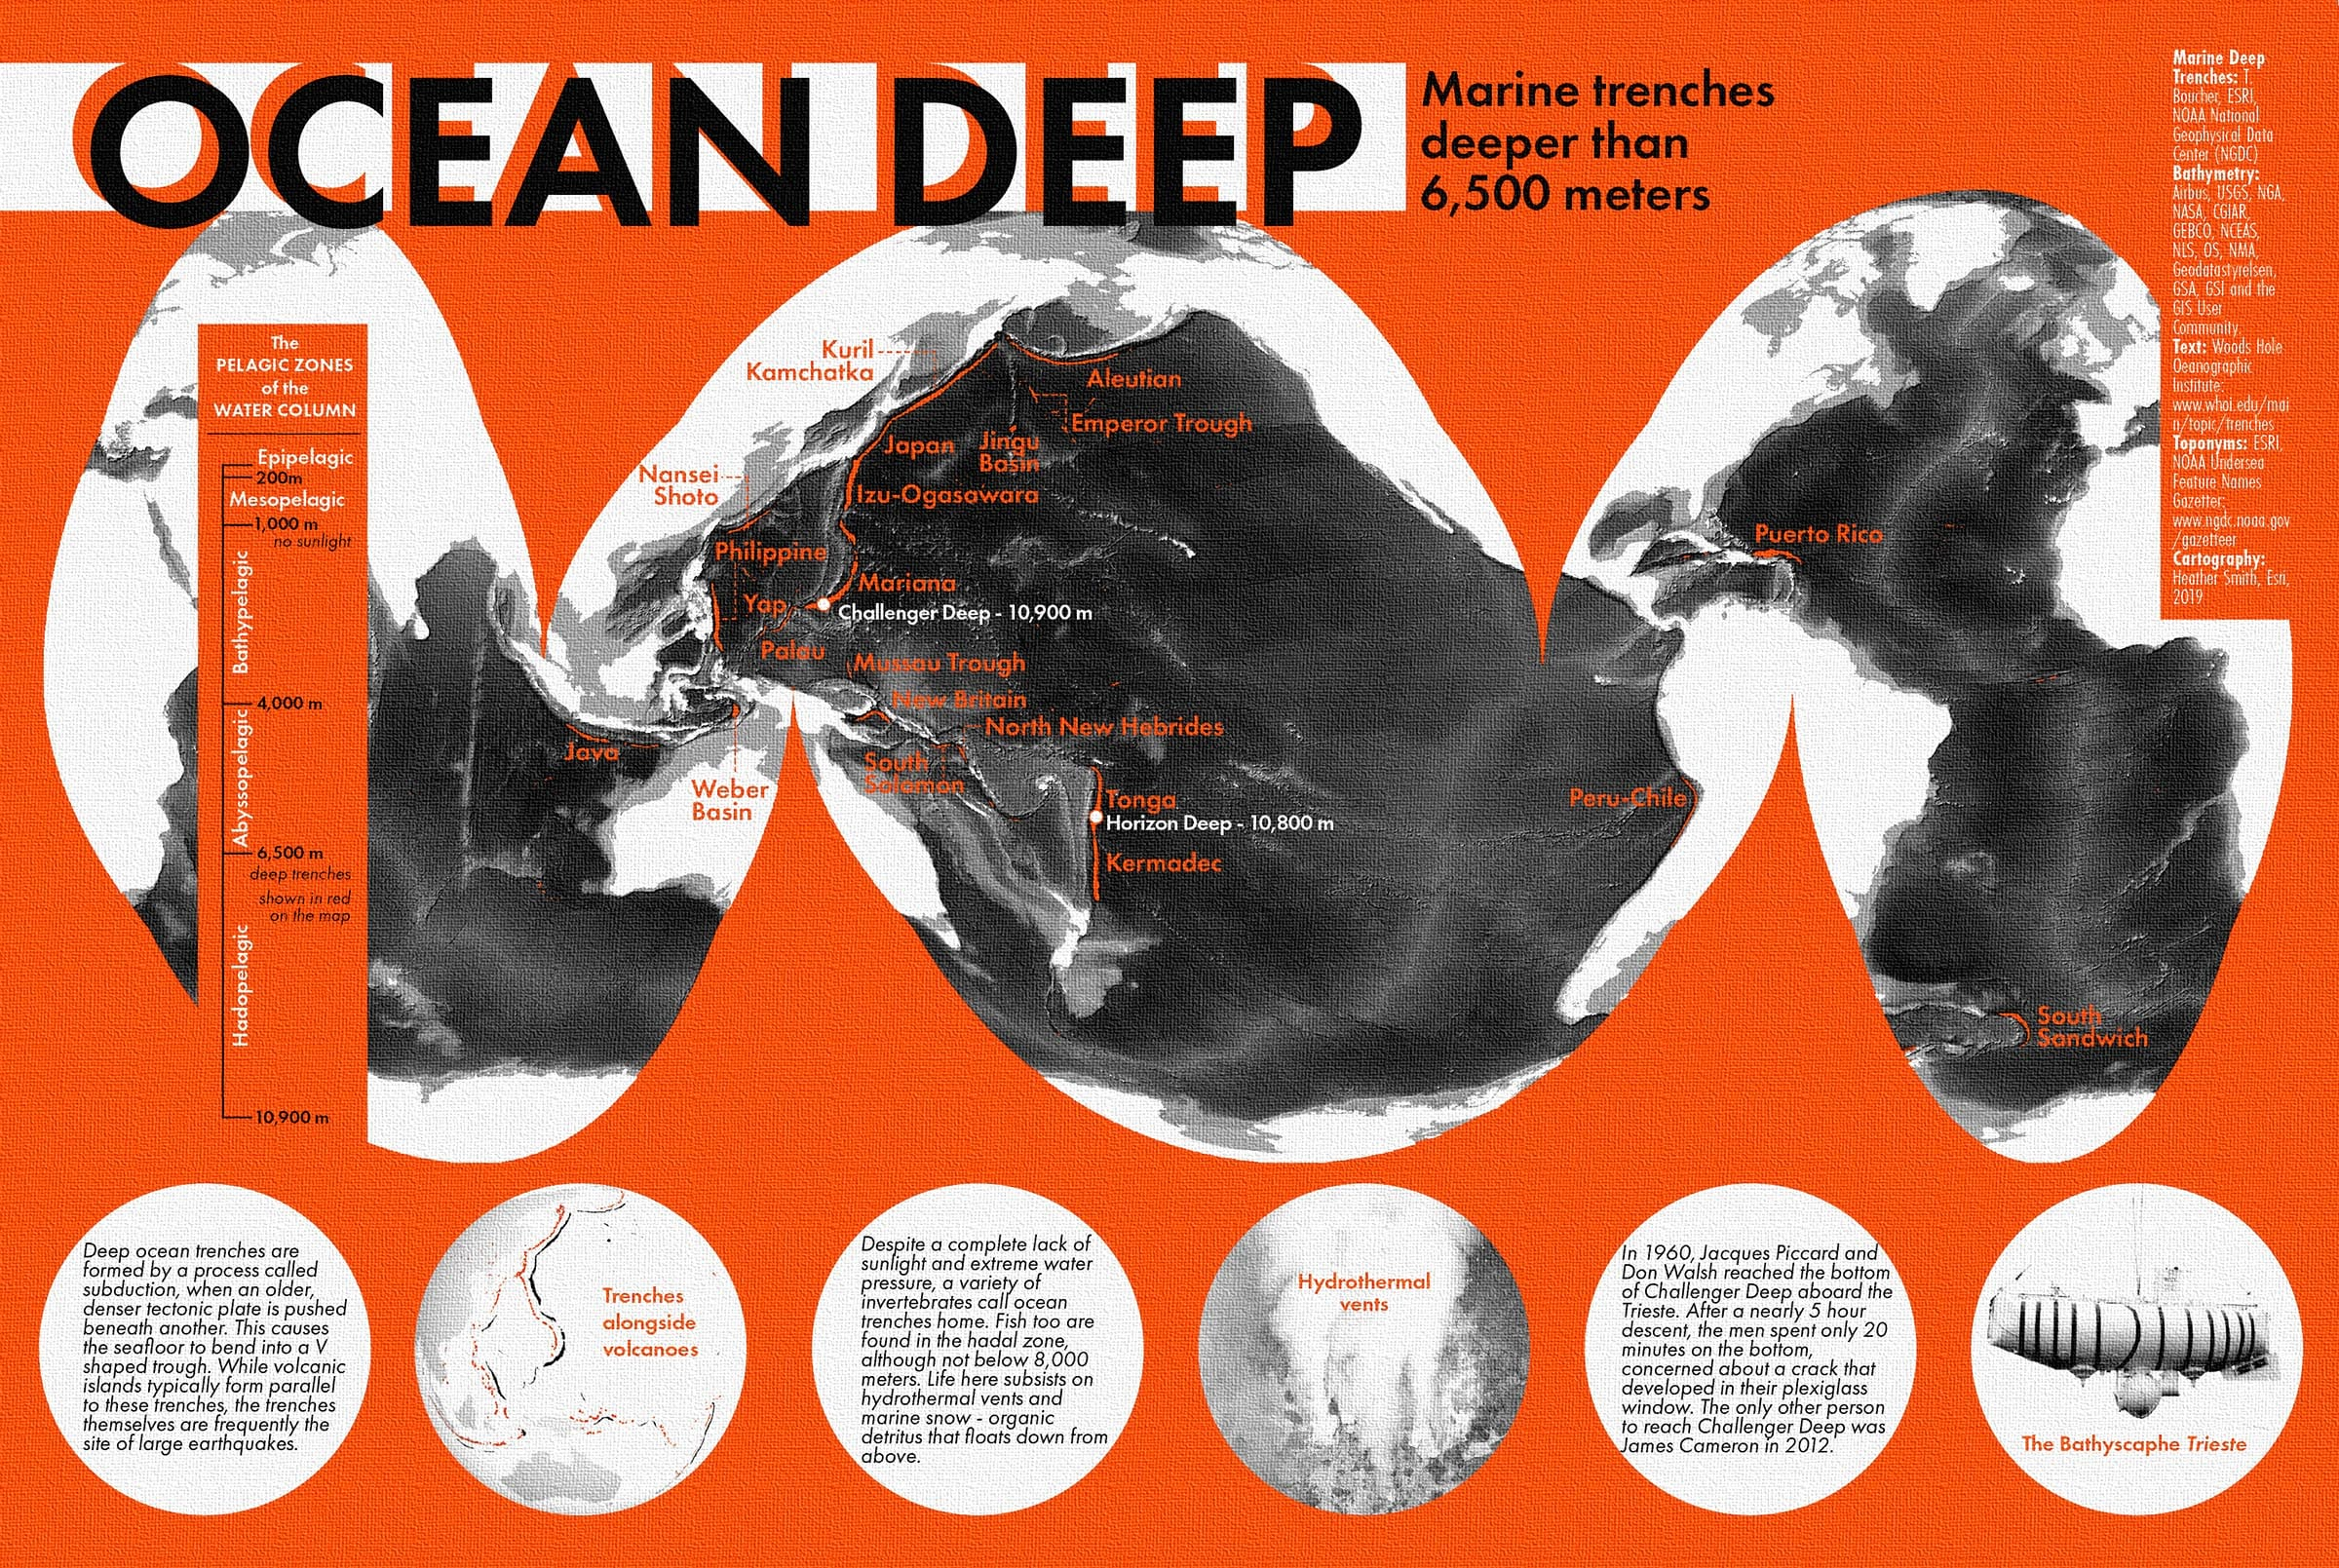 Textbook-inspired map of ocean trenches